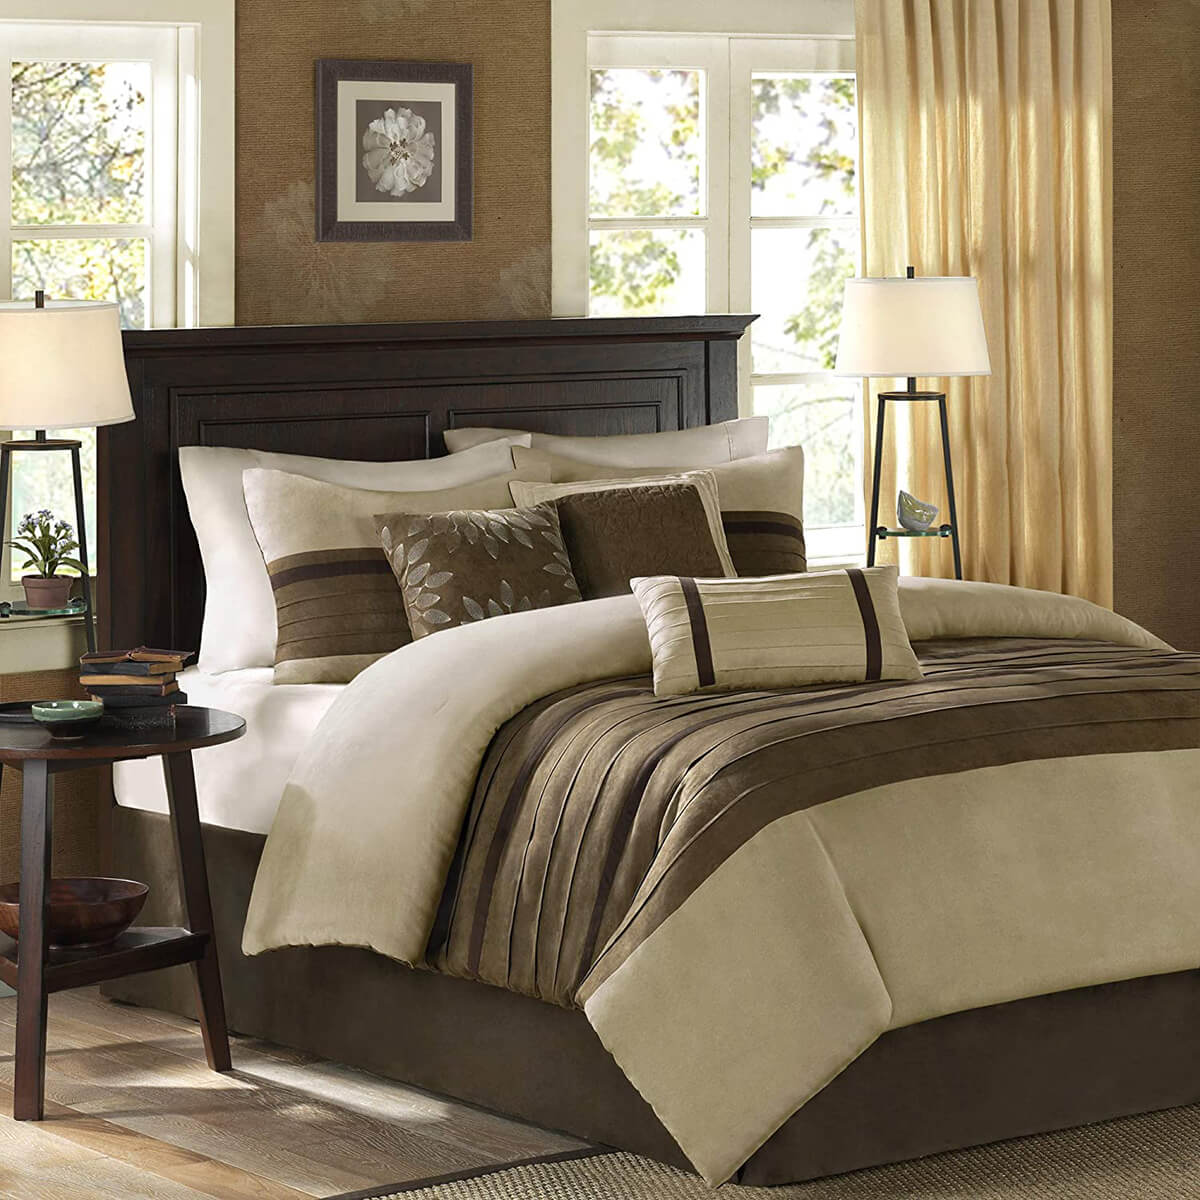 50 Shades of Brown Master Bedroom